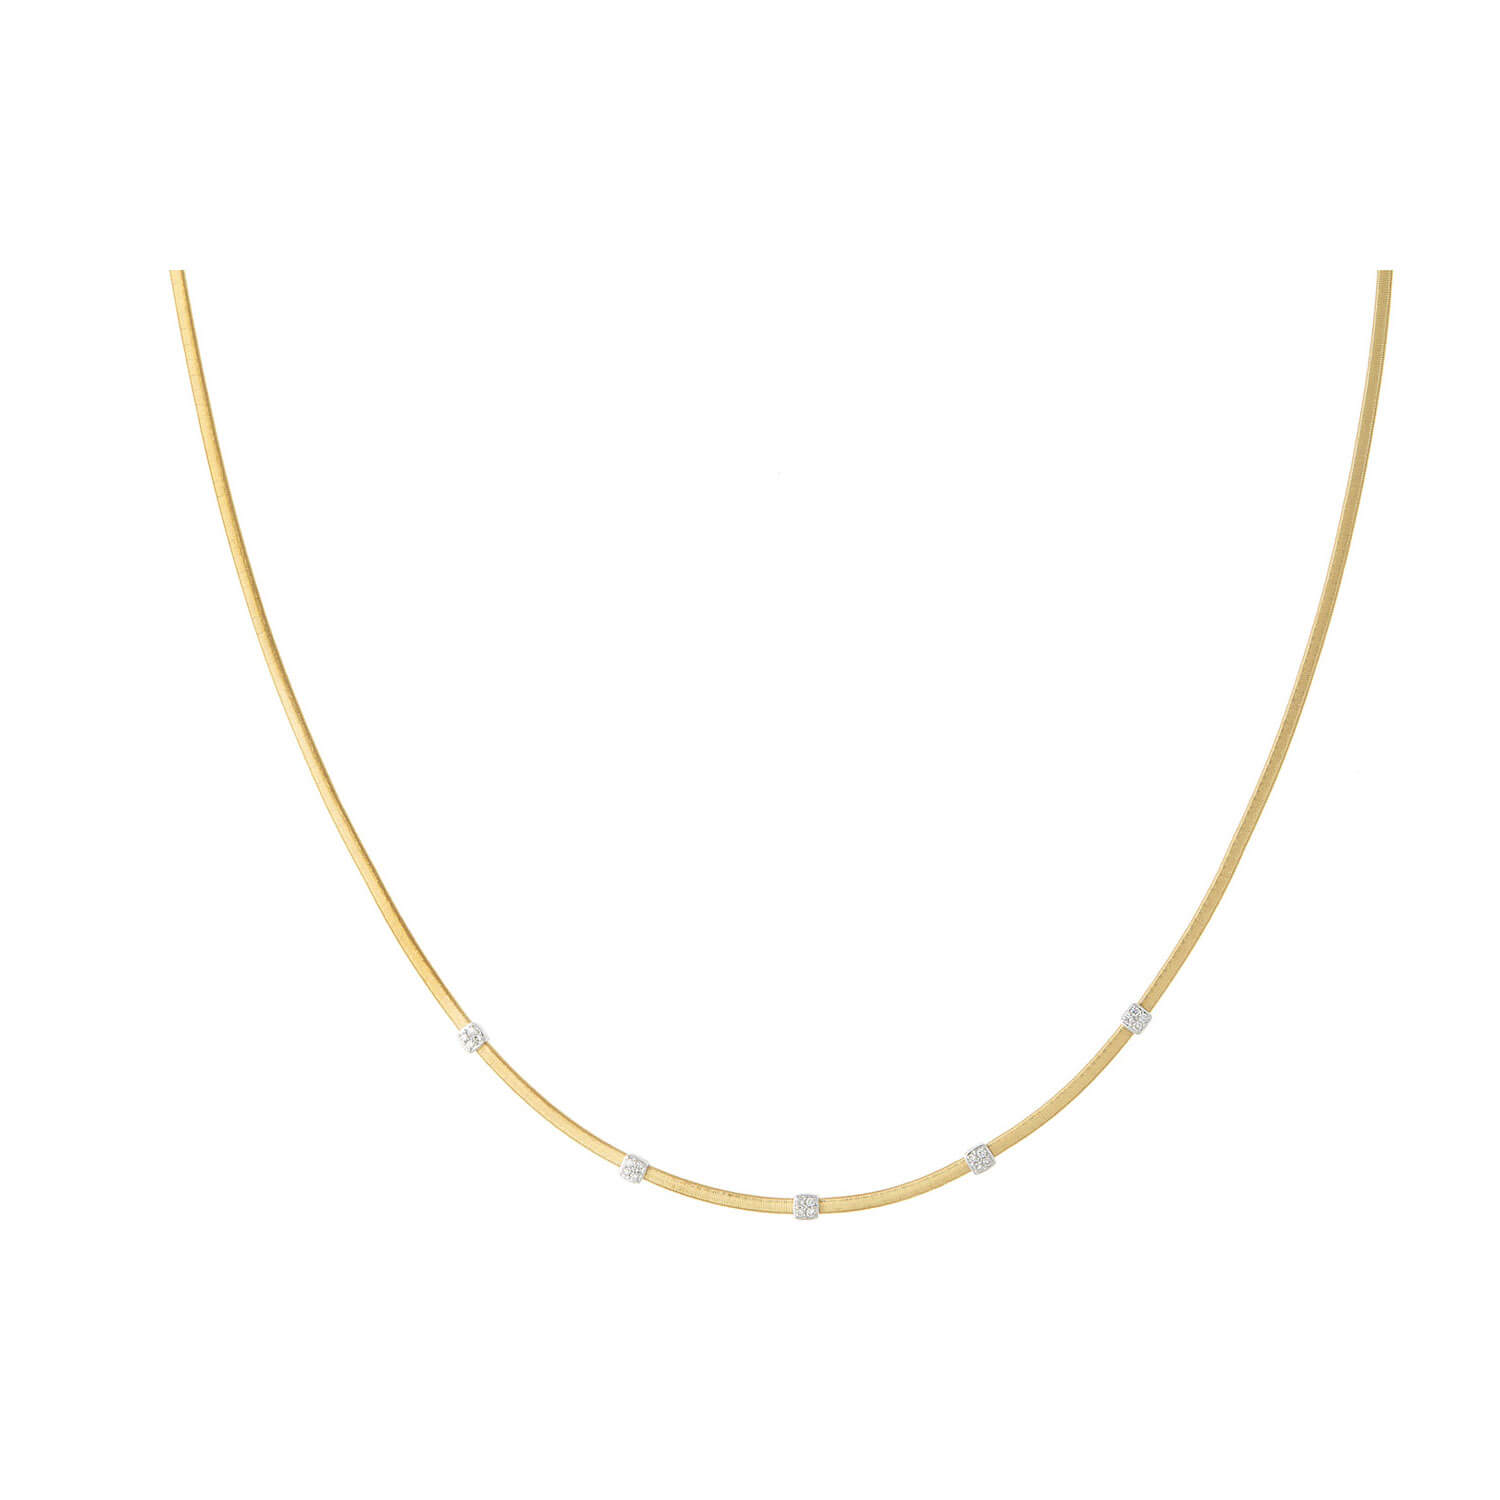 Marco Bicego Masai 18ct Yellow Gold and Diamond Necklace